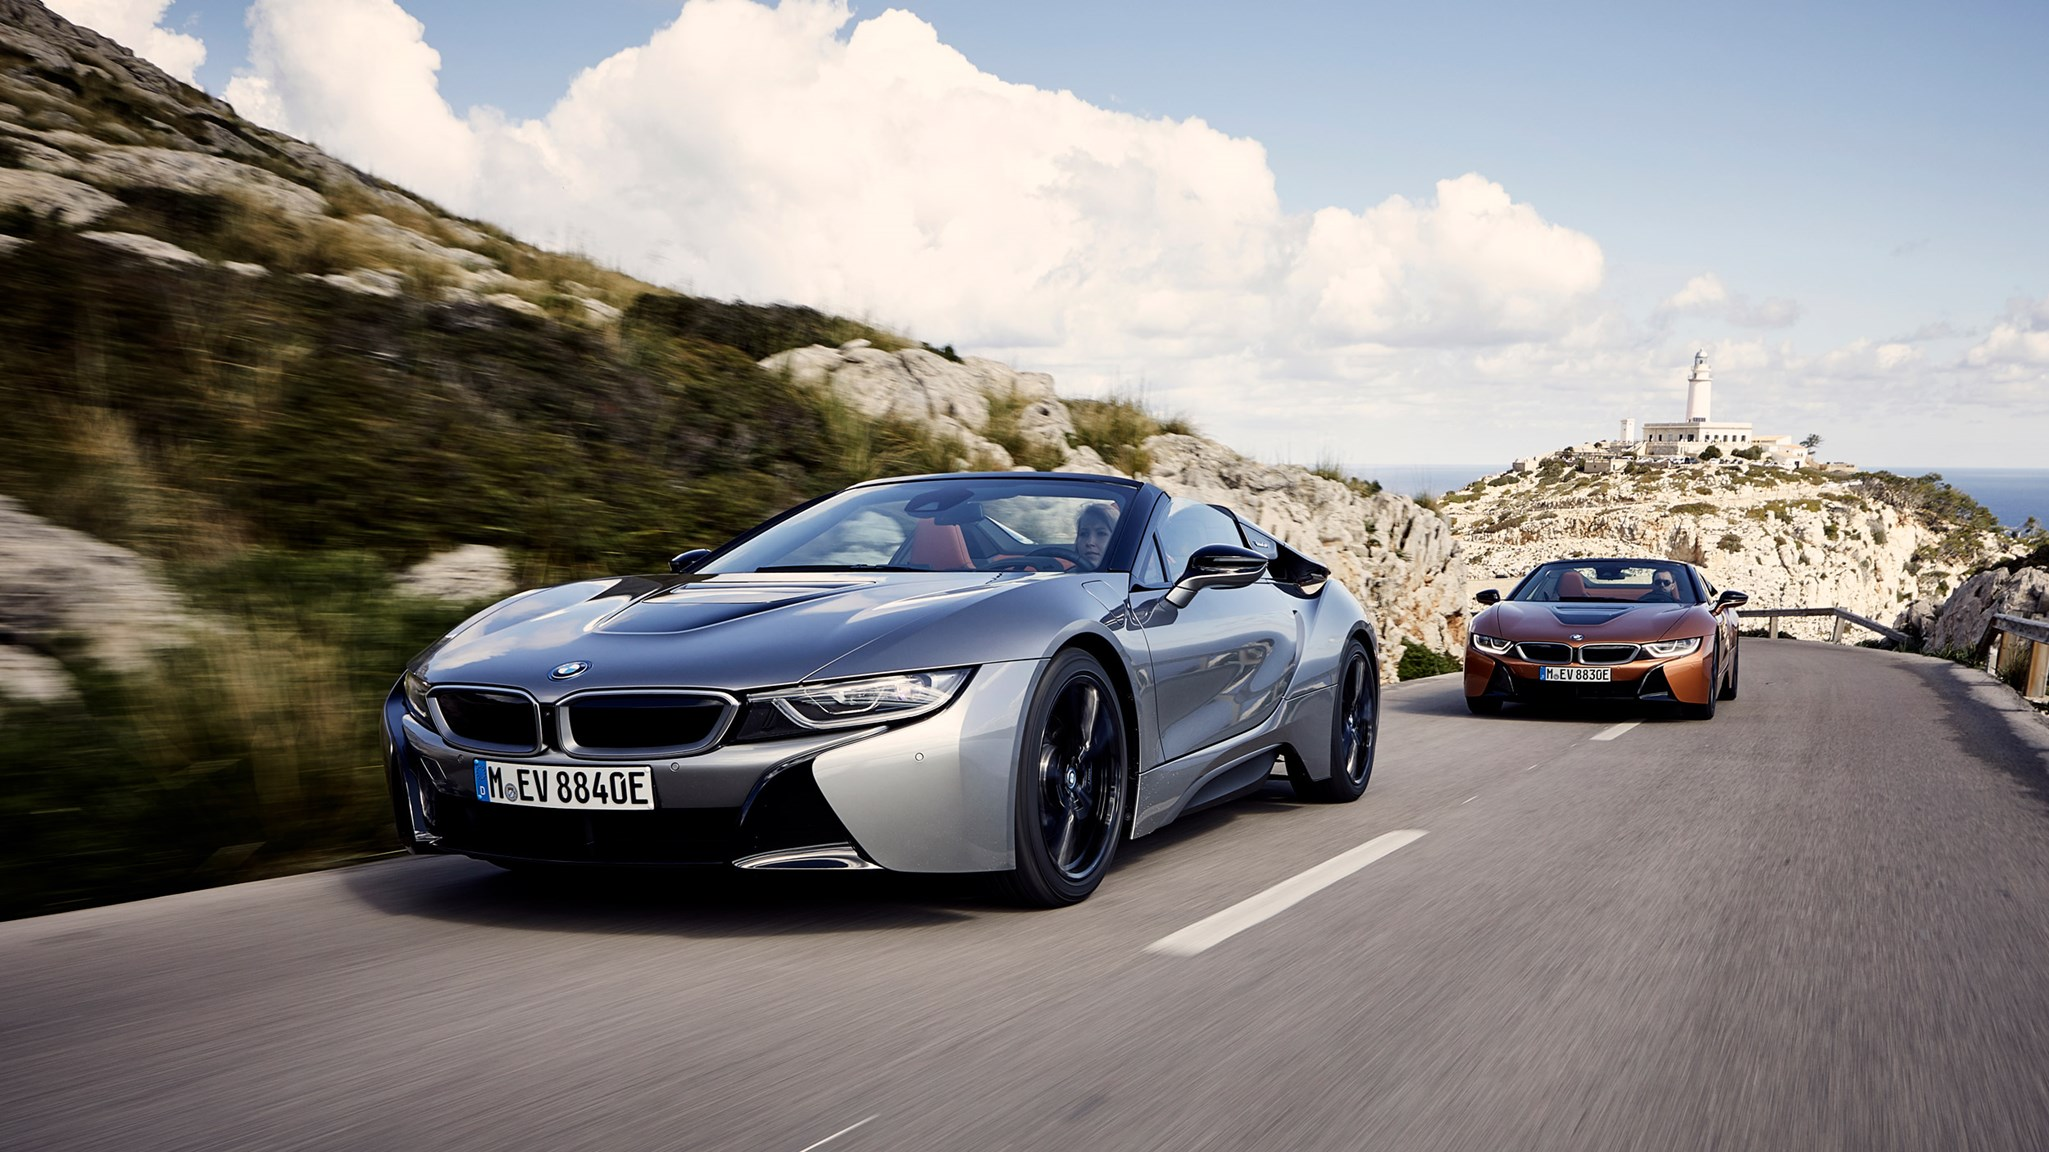 Bmw I8 Lease Deals >> BMW i8 Roadster review: the hybrid supercar, refined   CAR Magazine